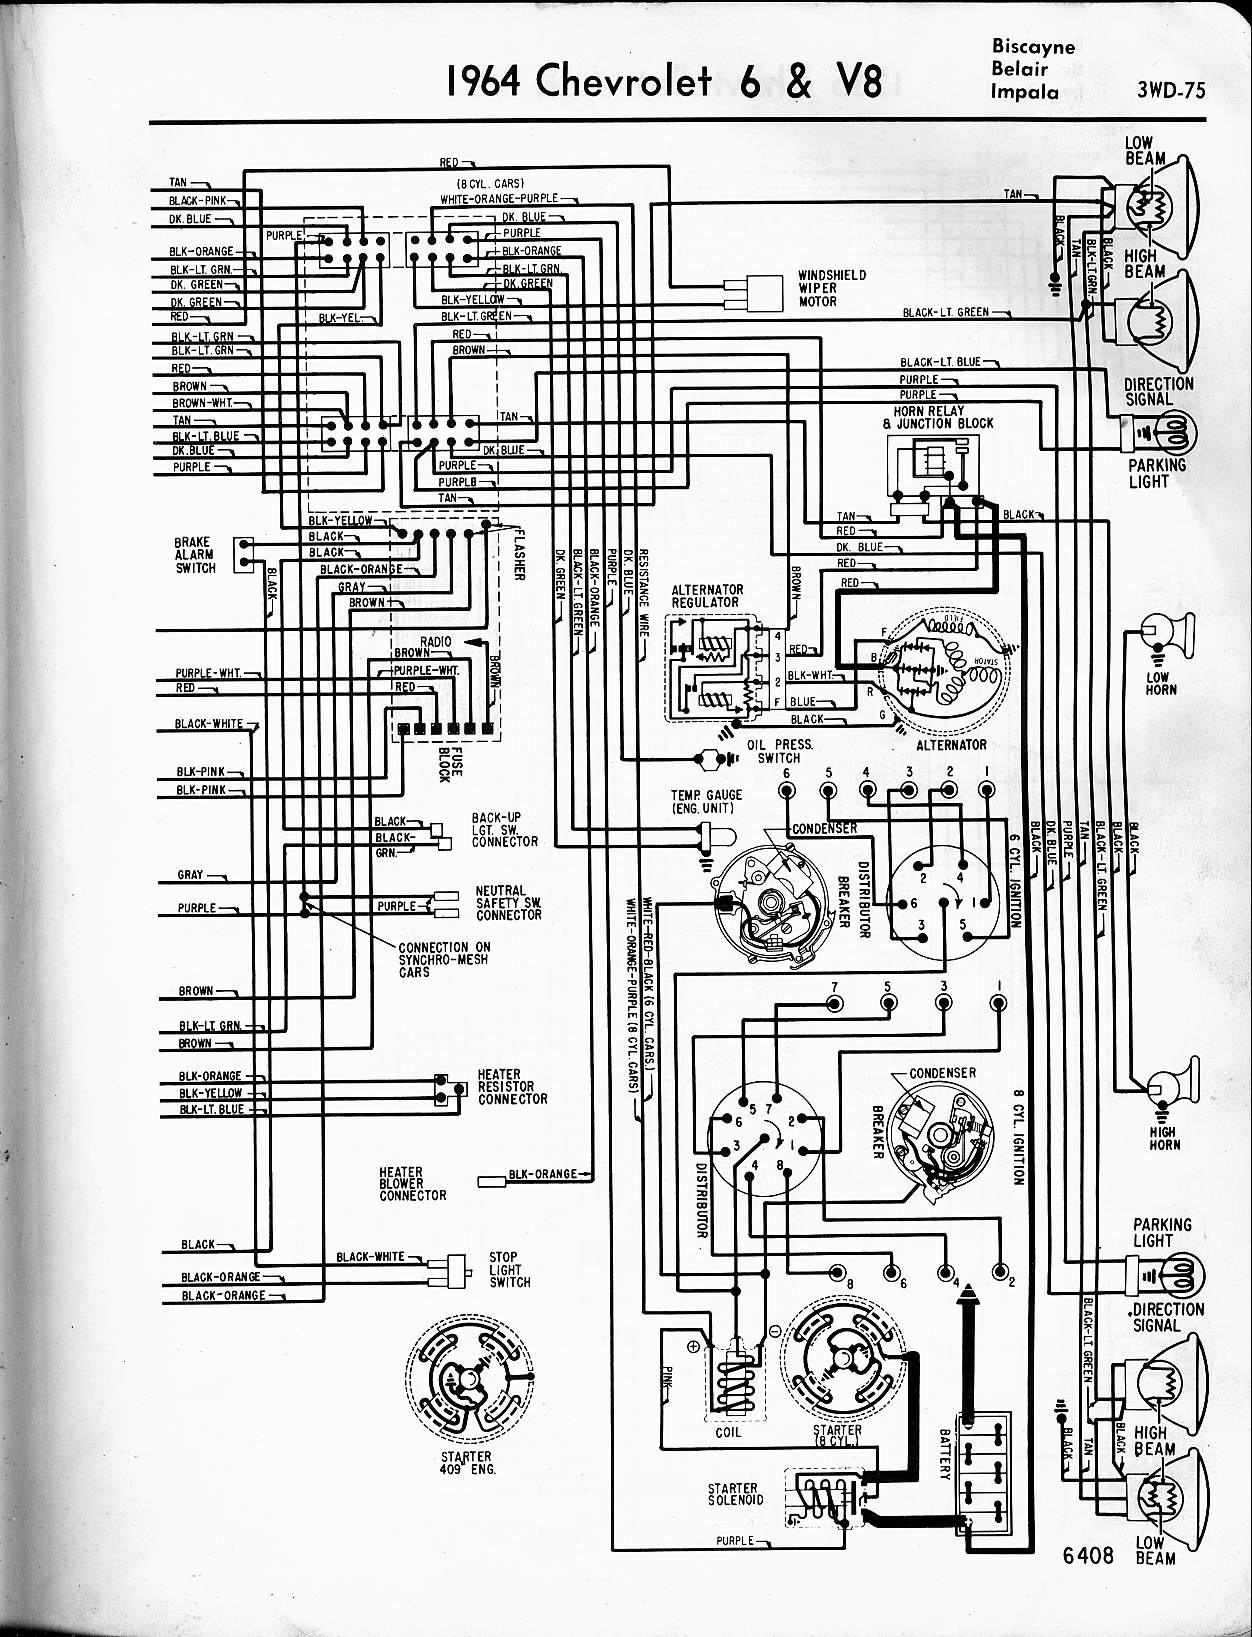 MWireChev64_3WD 075 1964 impala wiring diagram coil 1964 chevy nova wiring diagram 1960 chevy impala wiring diagram at crackthecode.co